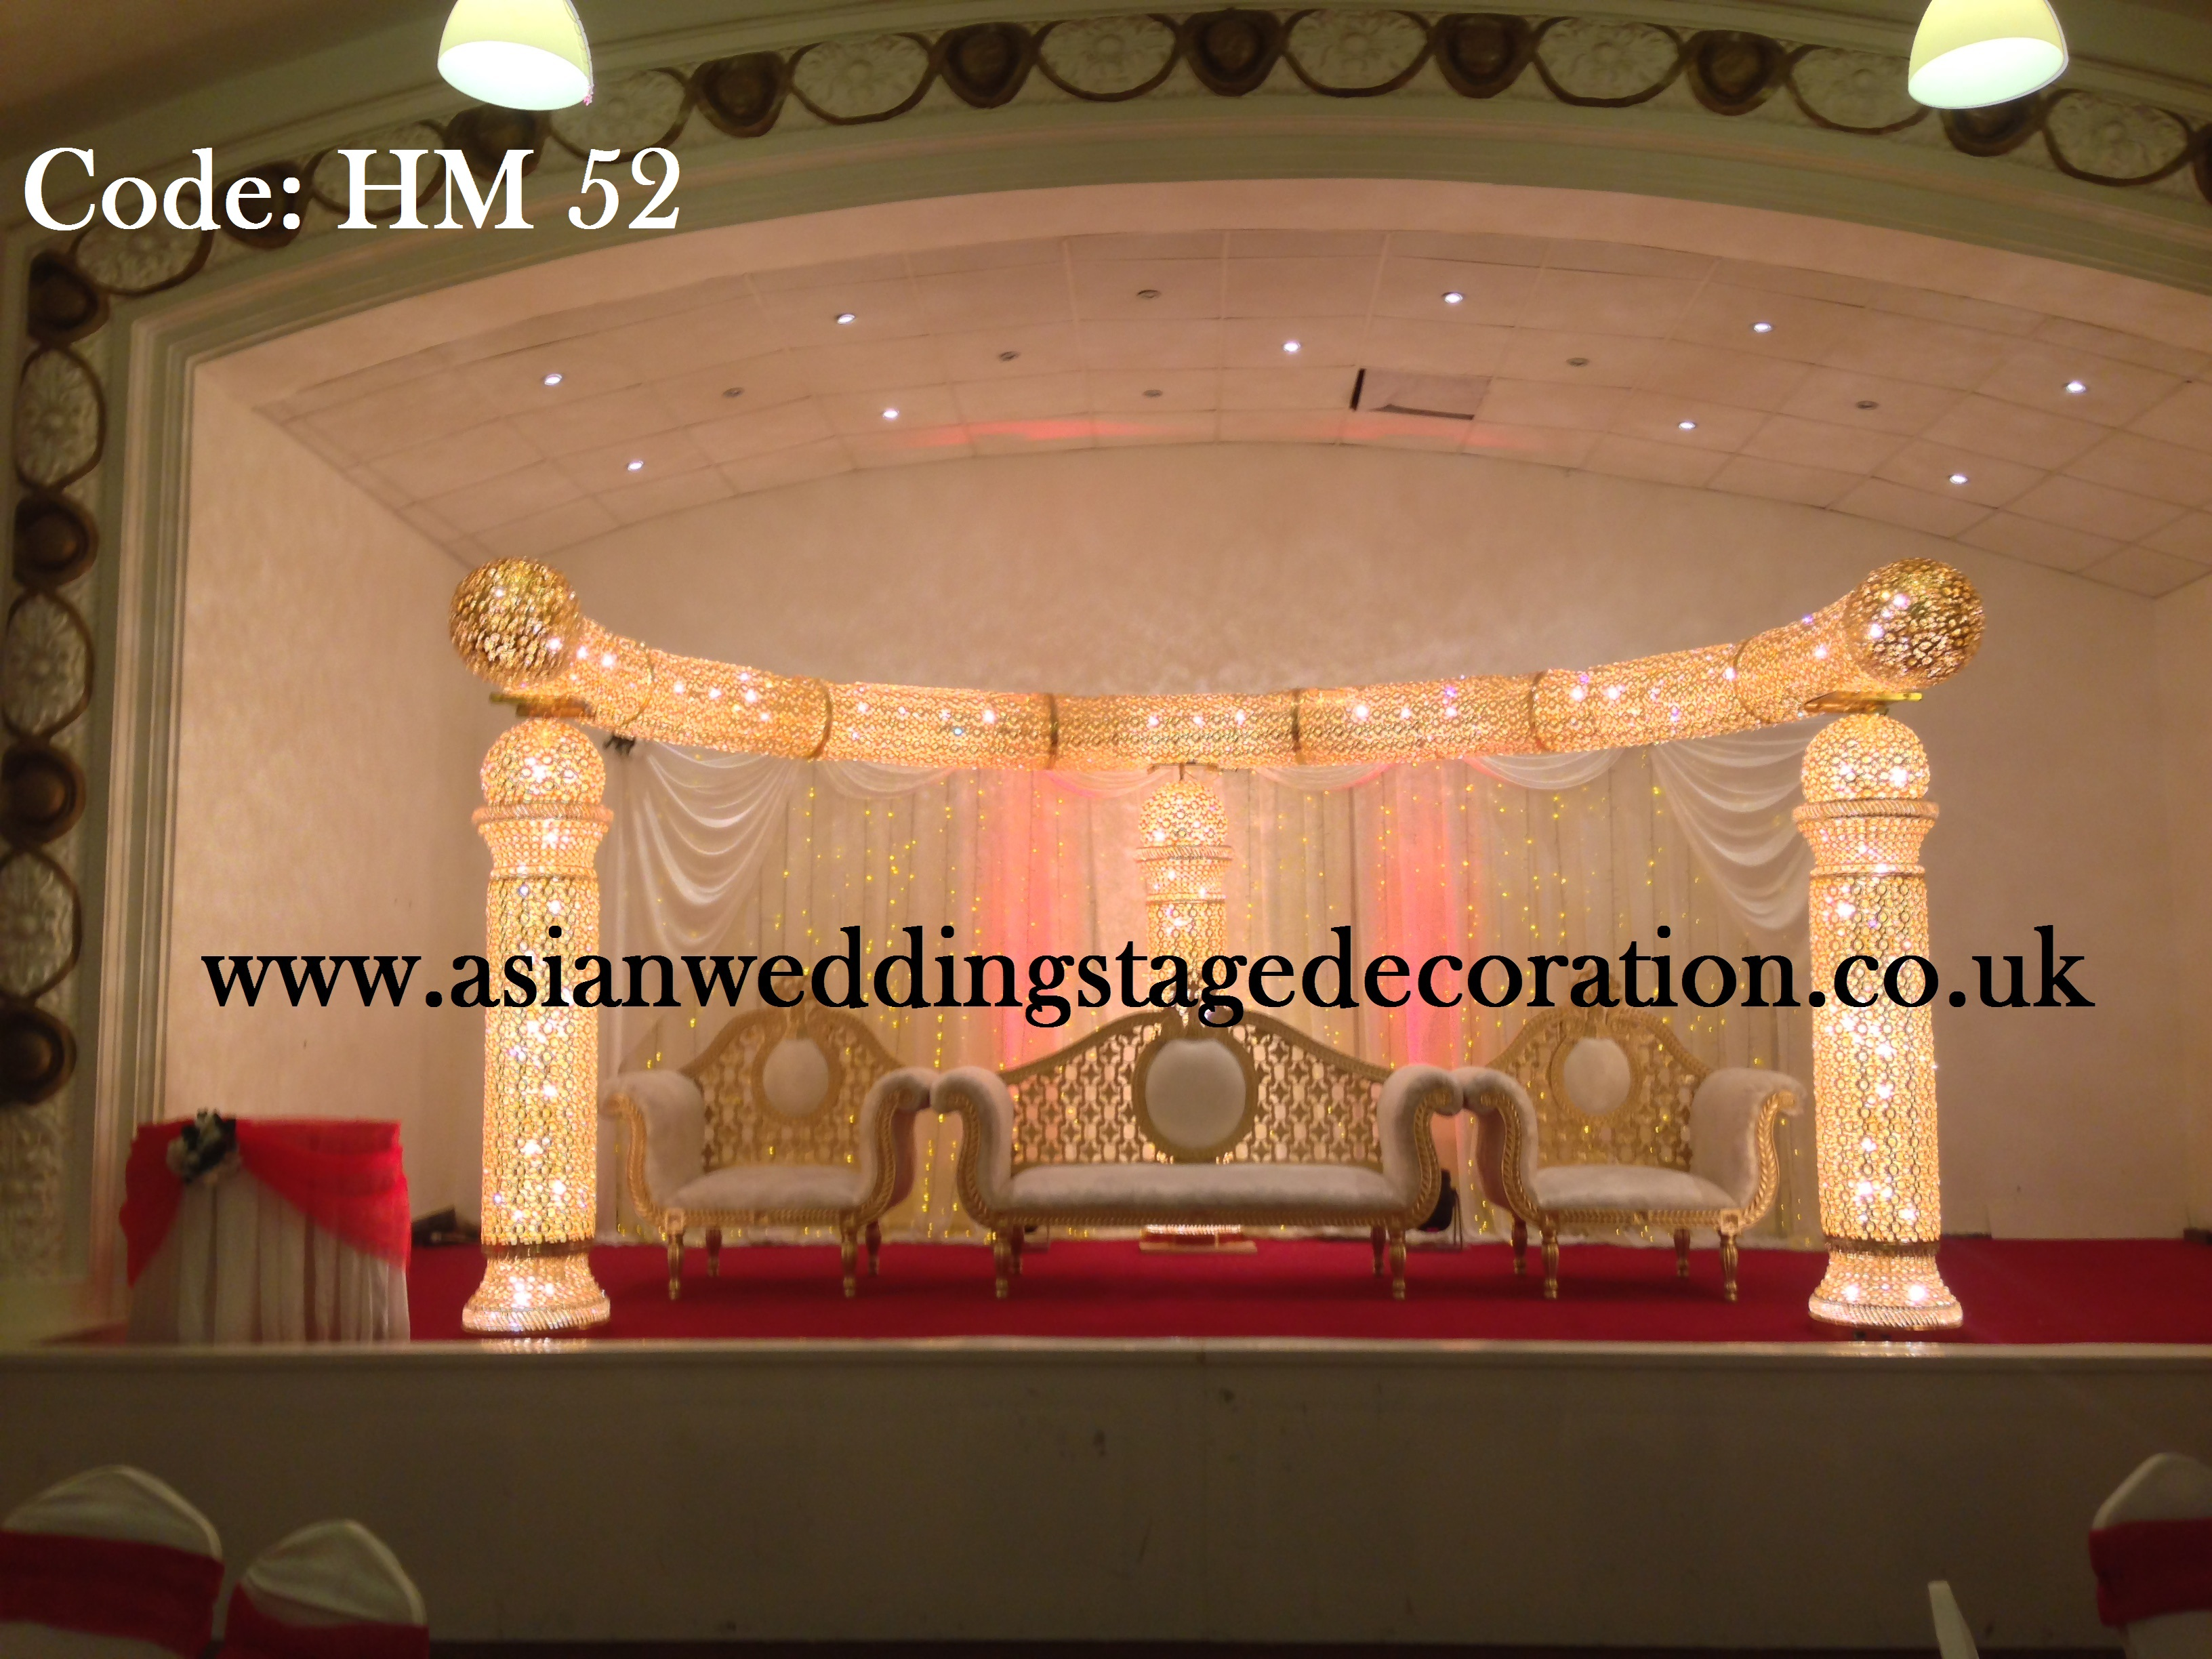 Asian wedding stages hire london birmingham and uks best wedding asian wedding stages hire london birmingham and uks best wedding services junglespirit Images